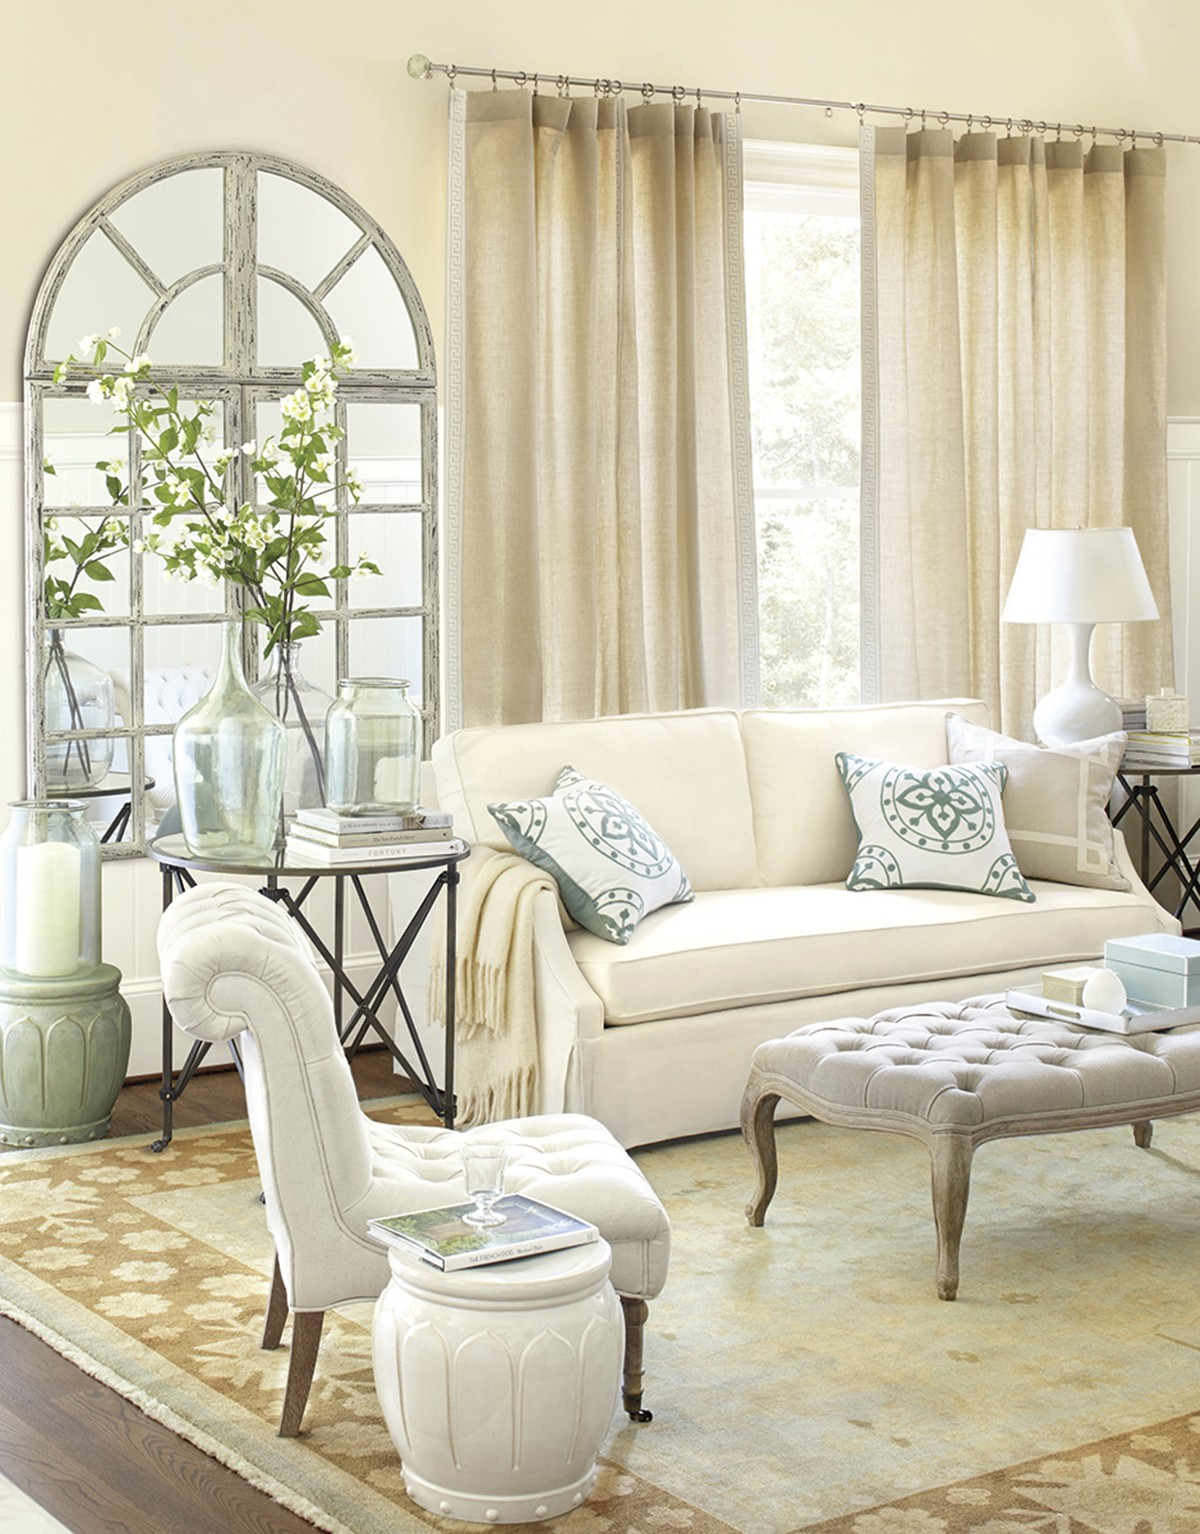 27 Neutral Living Room Design Ideas - Decoration Love